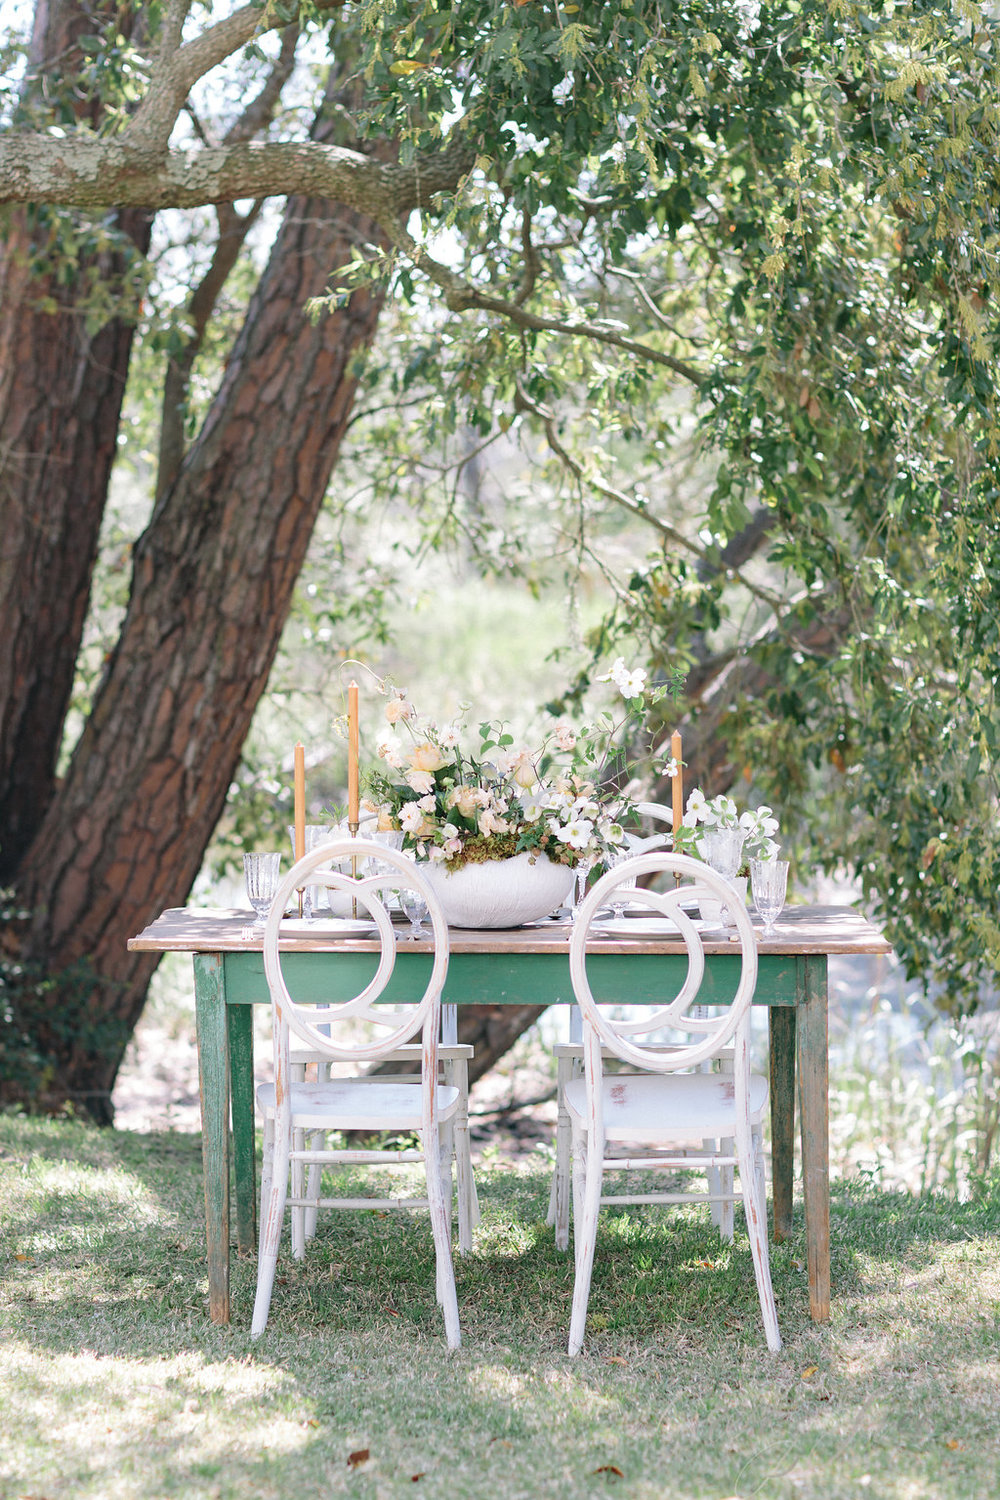 savannah-bridal-shop-ivory-and-beau-bridal-boutique-casey-green-photography-tybee-island-chapel-wedding-planning-mistakes-15.jpg